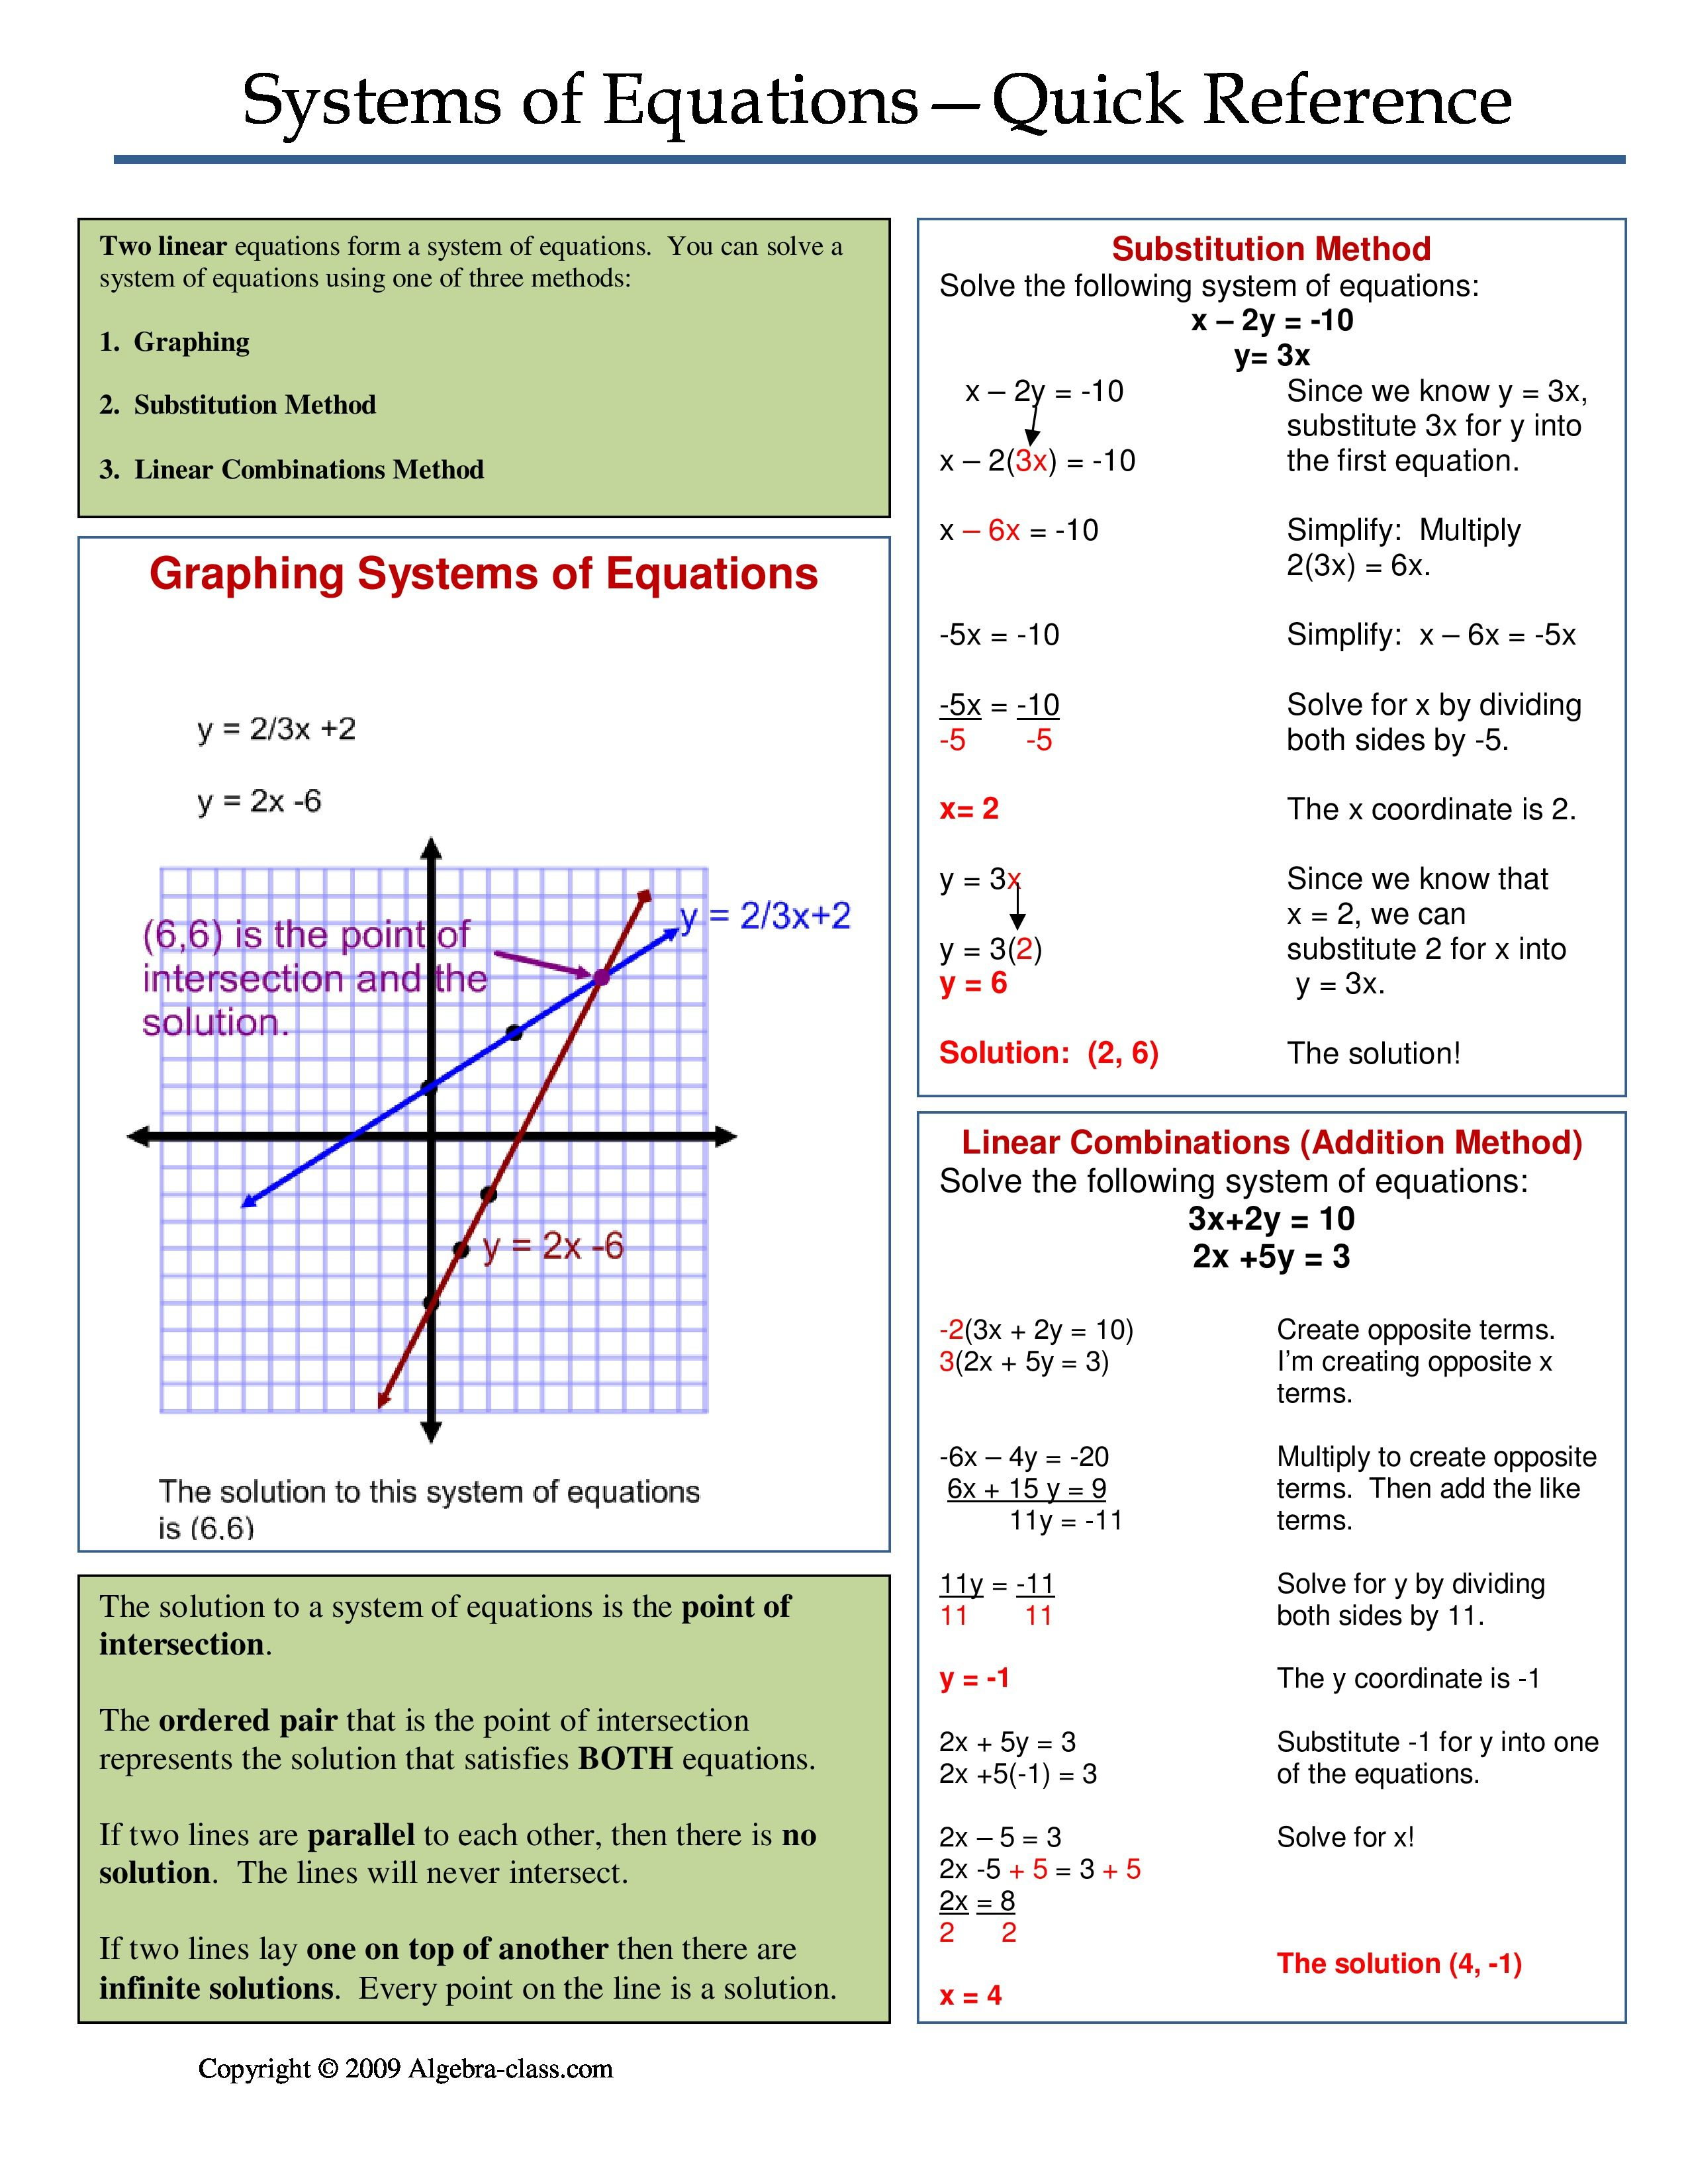 One page notes worksheet for Systems of Equations Unit. | math ...